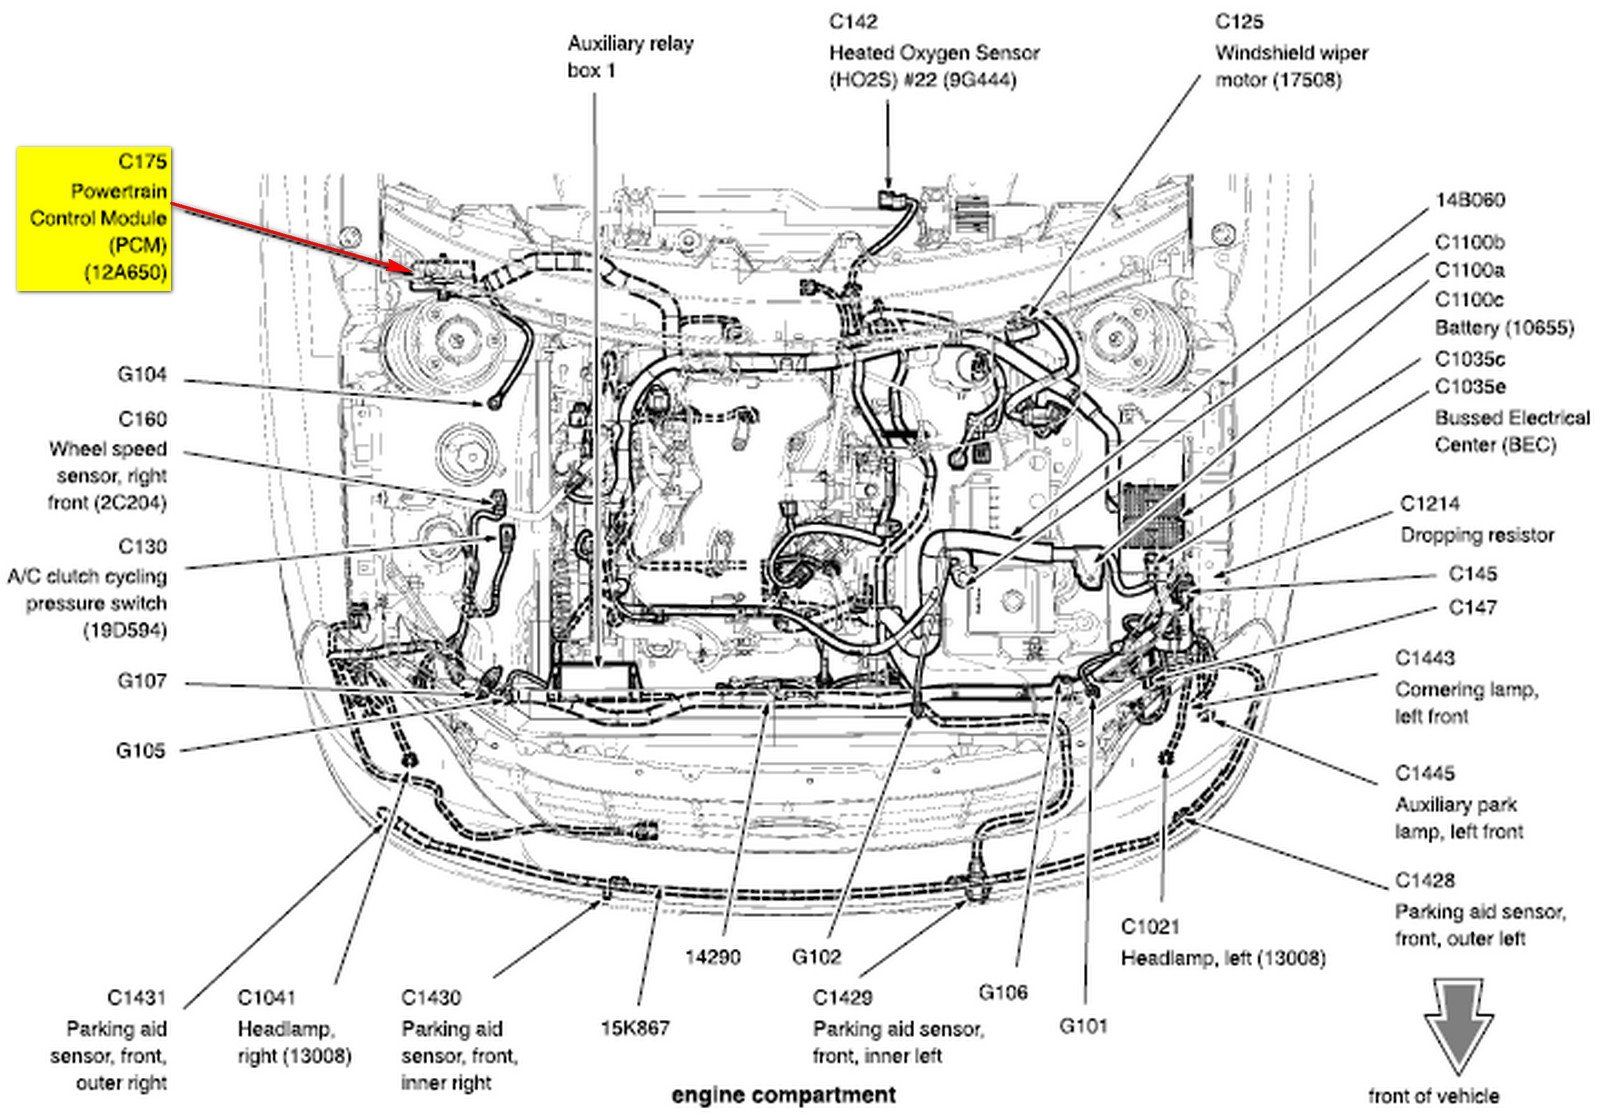 2005 Ford Freestar 3.9 L Engine Wiring Diagram